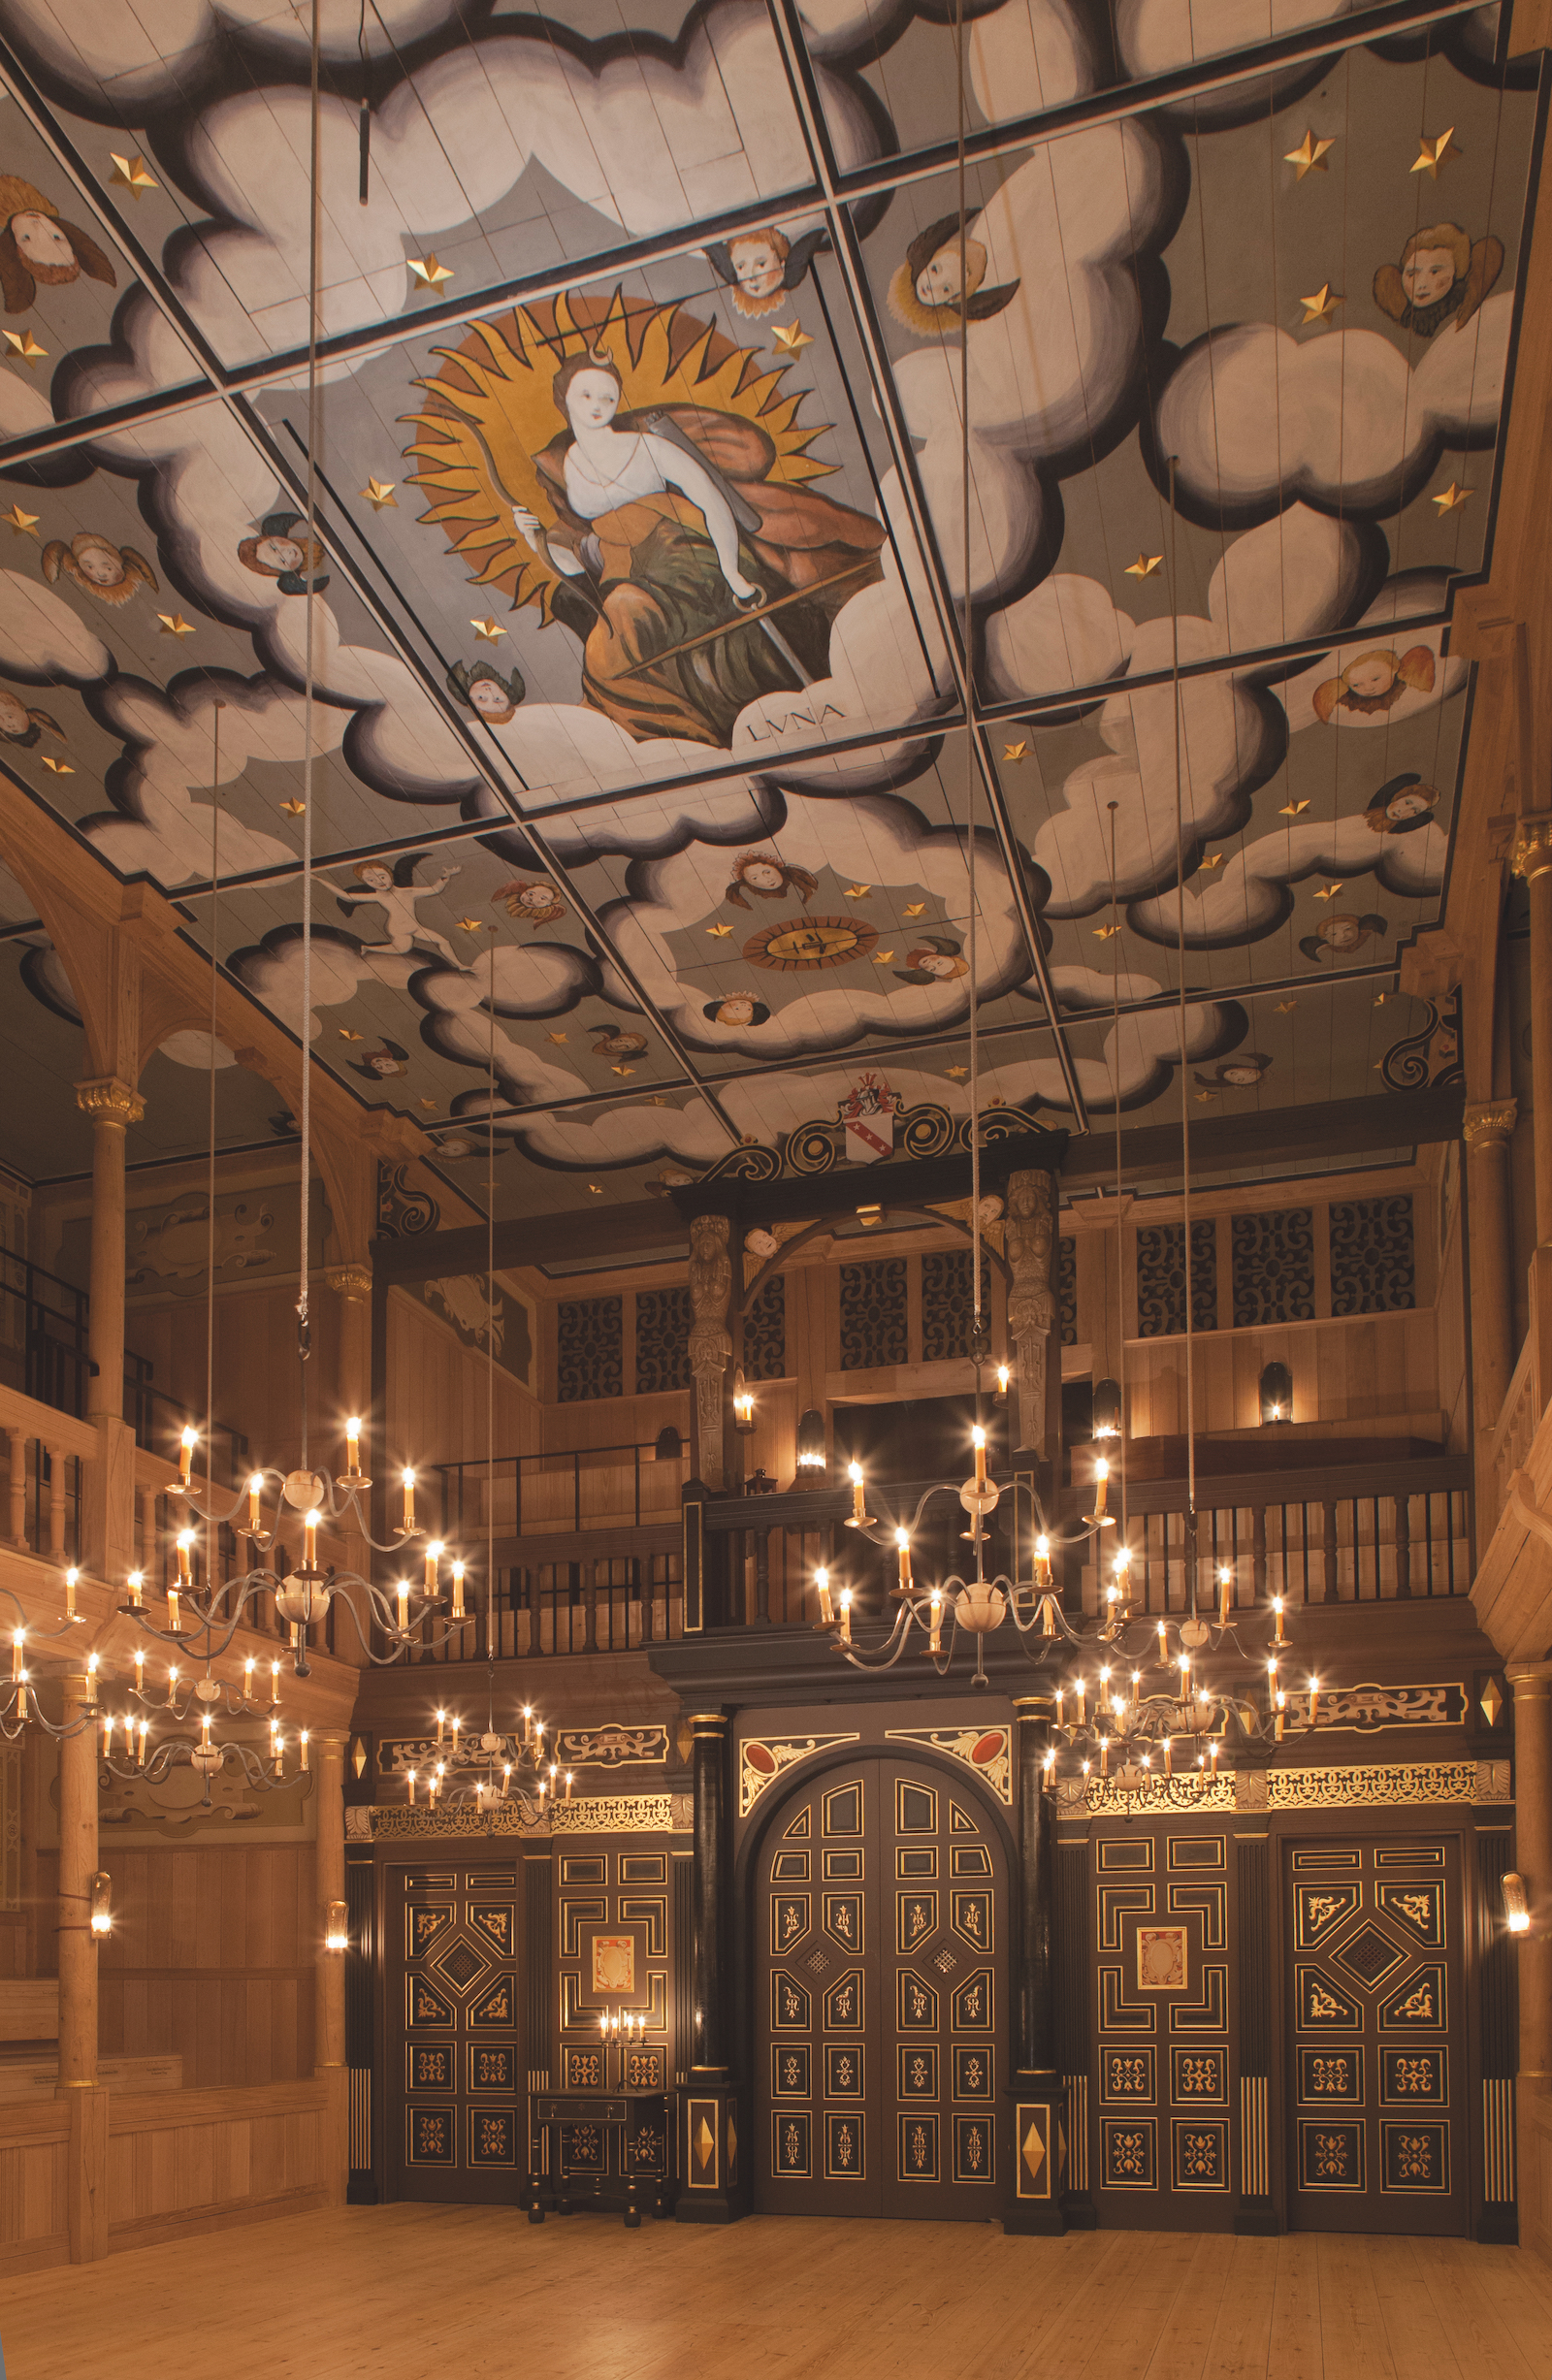 A tall ceilinged theatre with candelabras